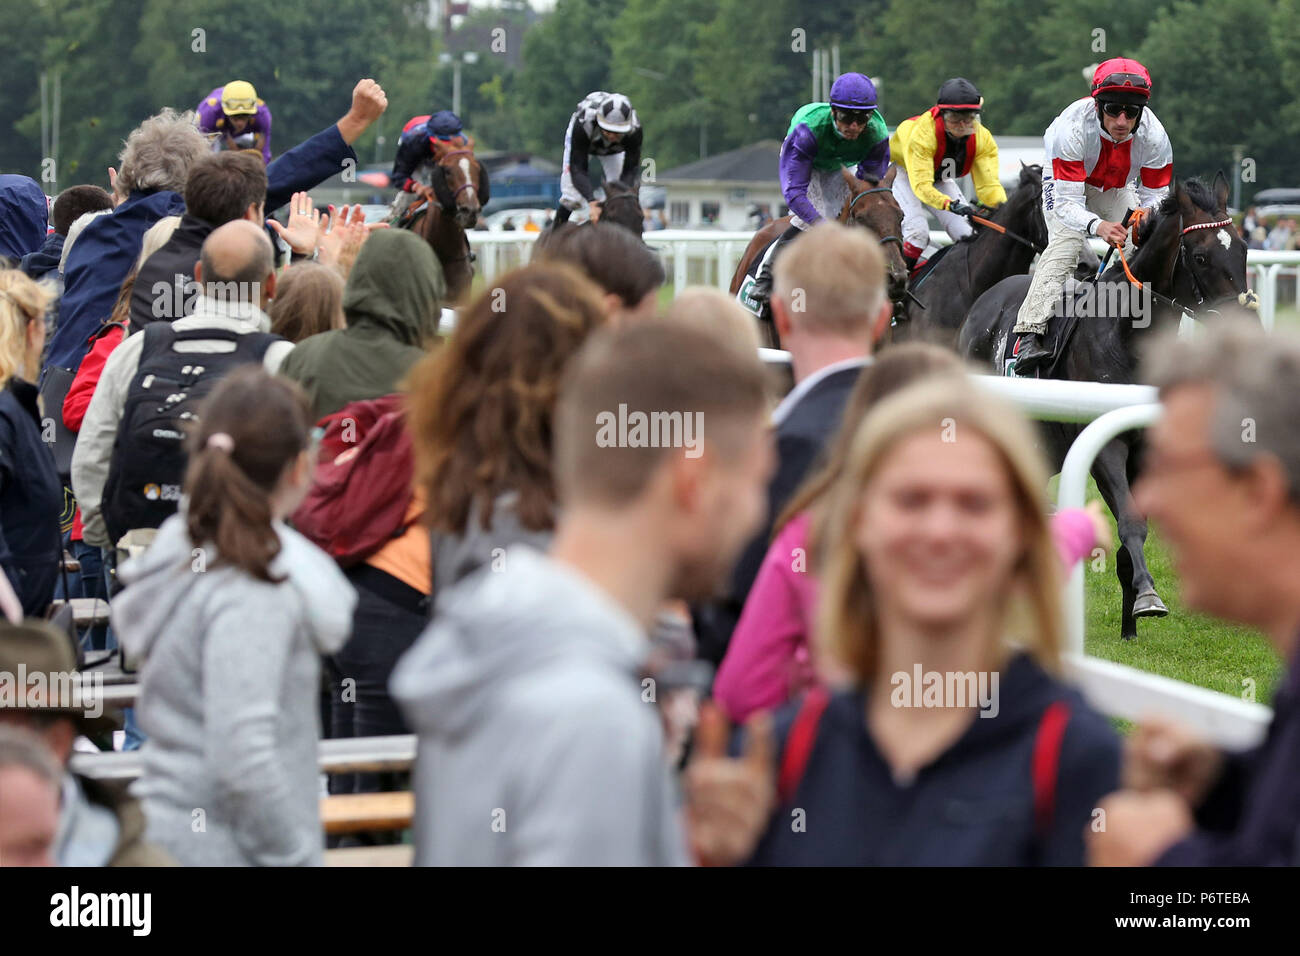 Hamburg, people at the gallop race - Stock Image